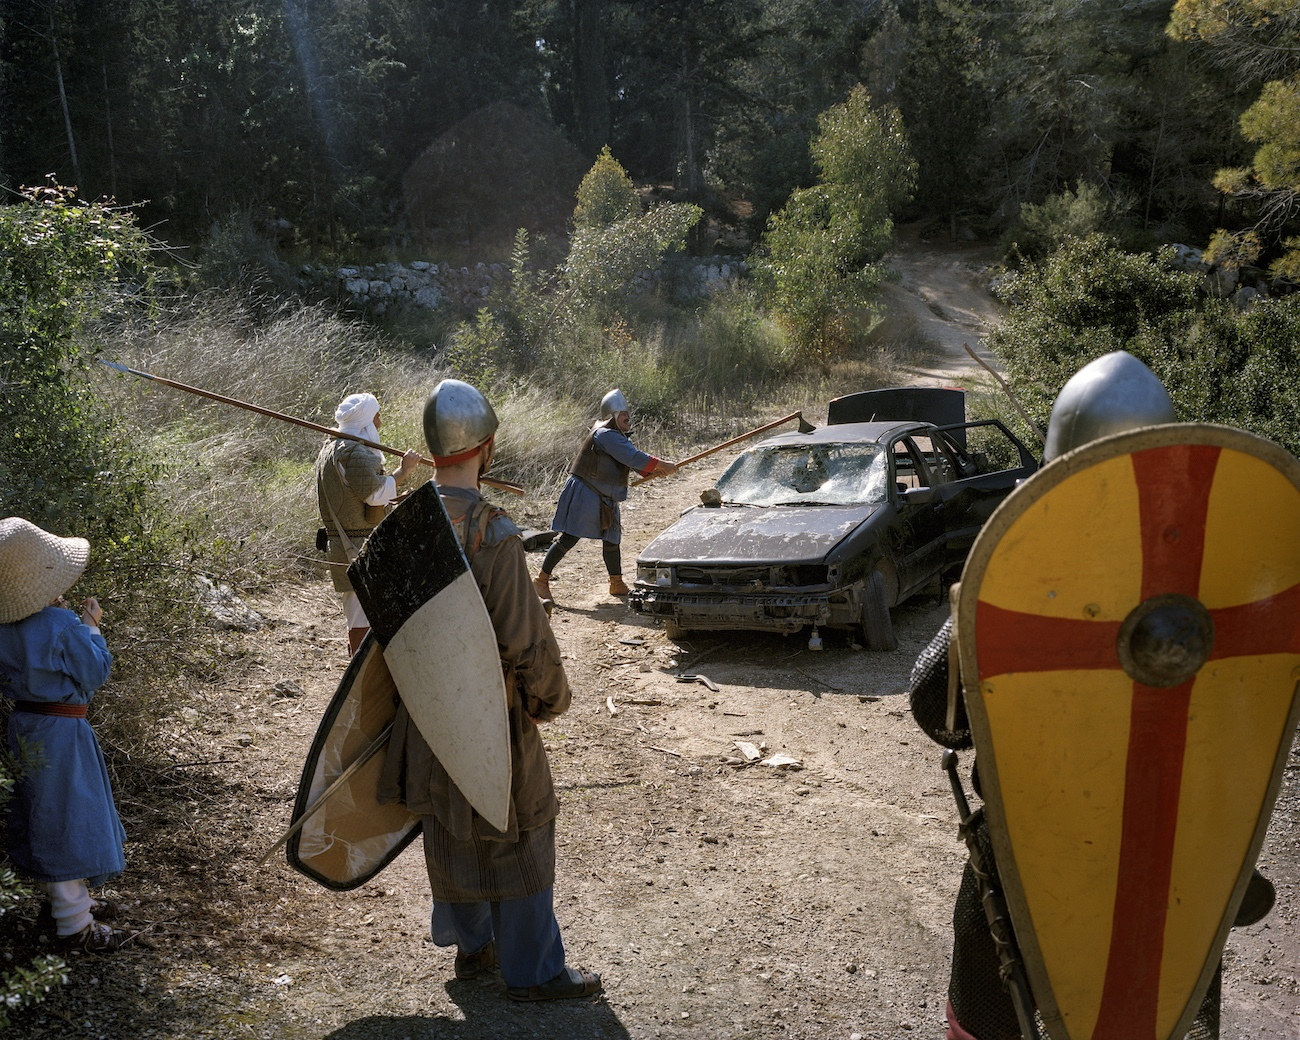 February 24, 2017. Peru Forest near Latrun, Israel. As a little joke, an Israeli reenactment group departs from the historical protocol and slams away at a car wreck. The historical era they are devoted to is that of the crusades. At the Council of Clermont on November 27, 1095, Pope Urban II invoked the Christians to crusade in the Holy Land. They should drive away the Muslims living there and seize the holy sites in Jerusalem for the Christians.